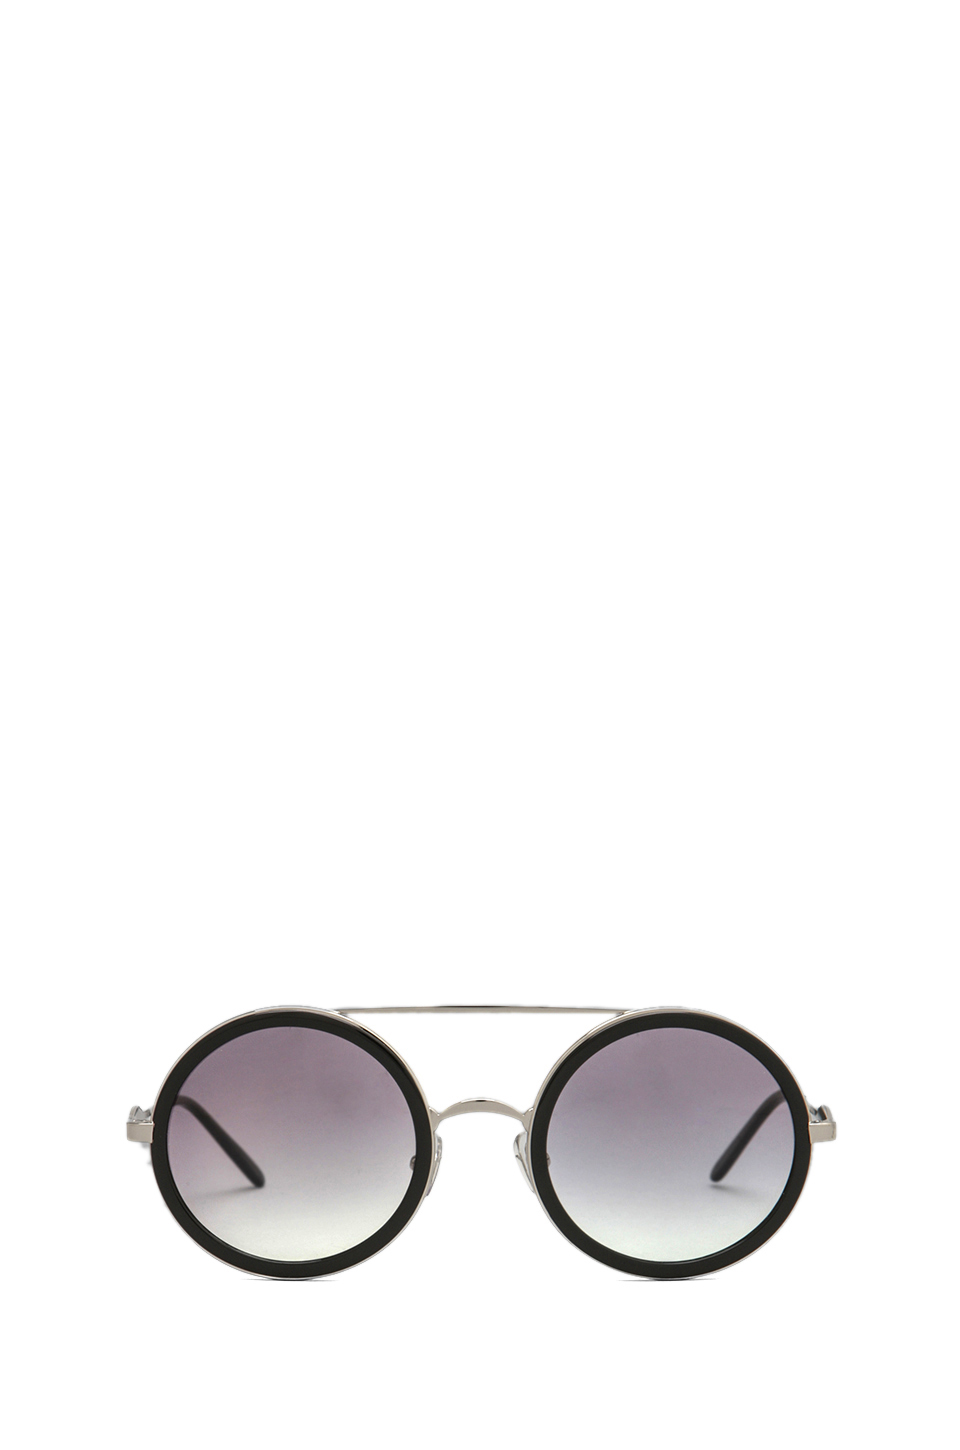 Wildfox Couture Winona Circle Frame Sunglasses in Silver w/ Black